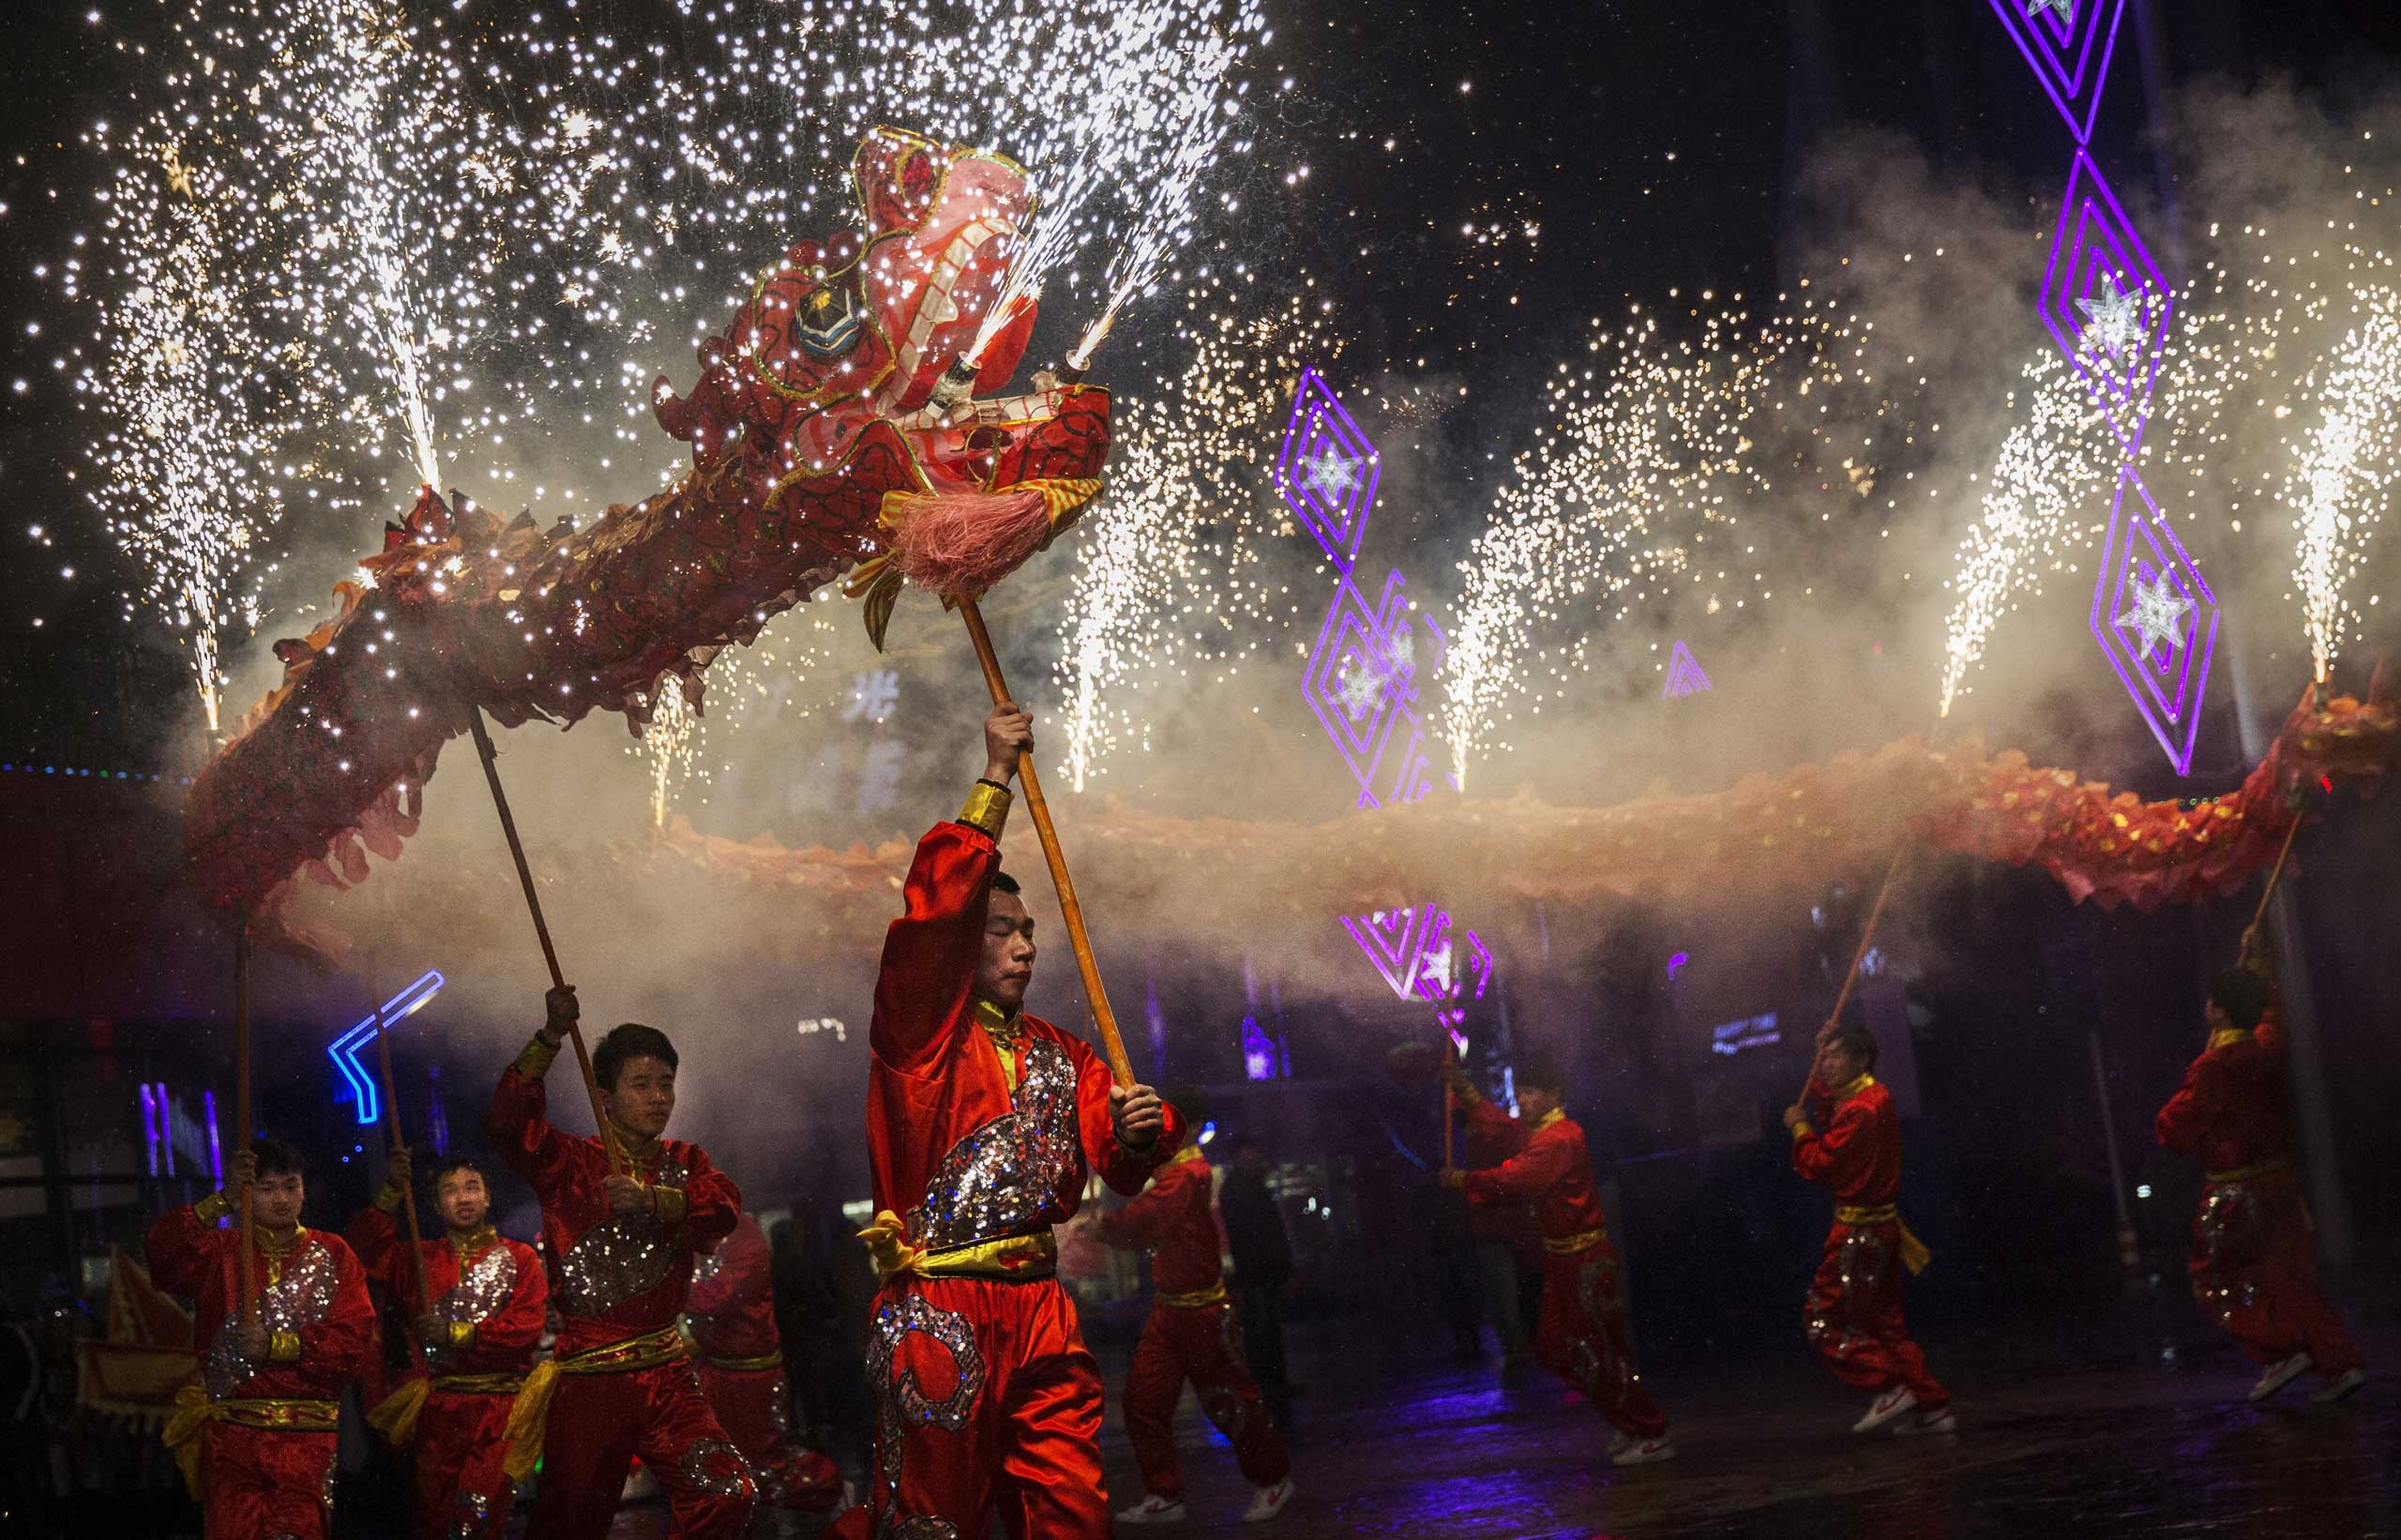 Artists perform a dragon dance at a local amusement park during celebrations for the Lunar New Year, Feb. 19, 2015 in Beijing.